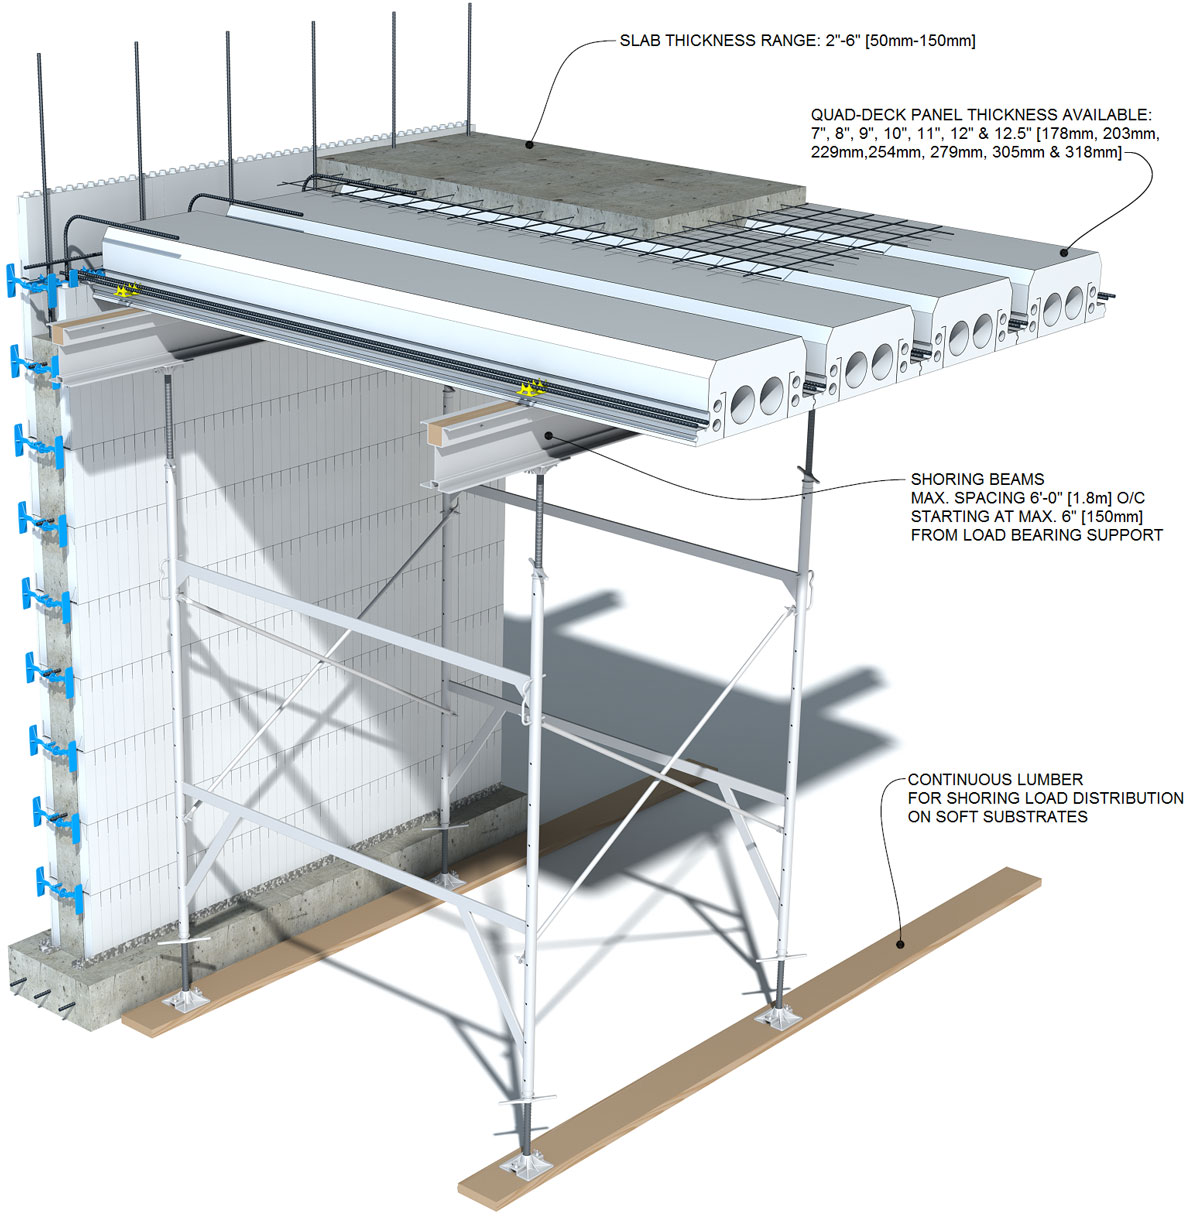 Alternate ceiling to concrete ar15 com for Icf concrete floors